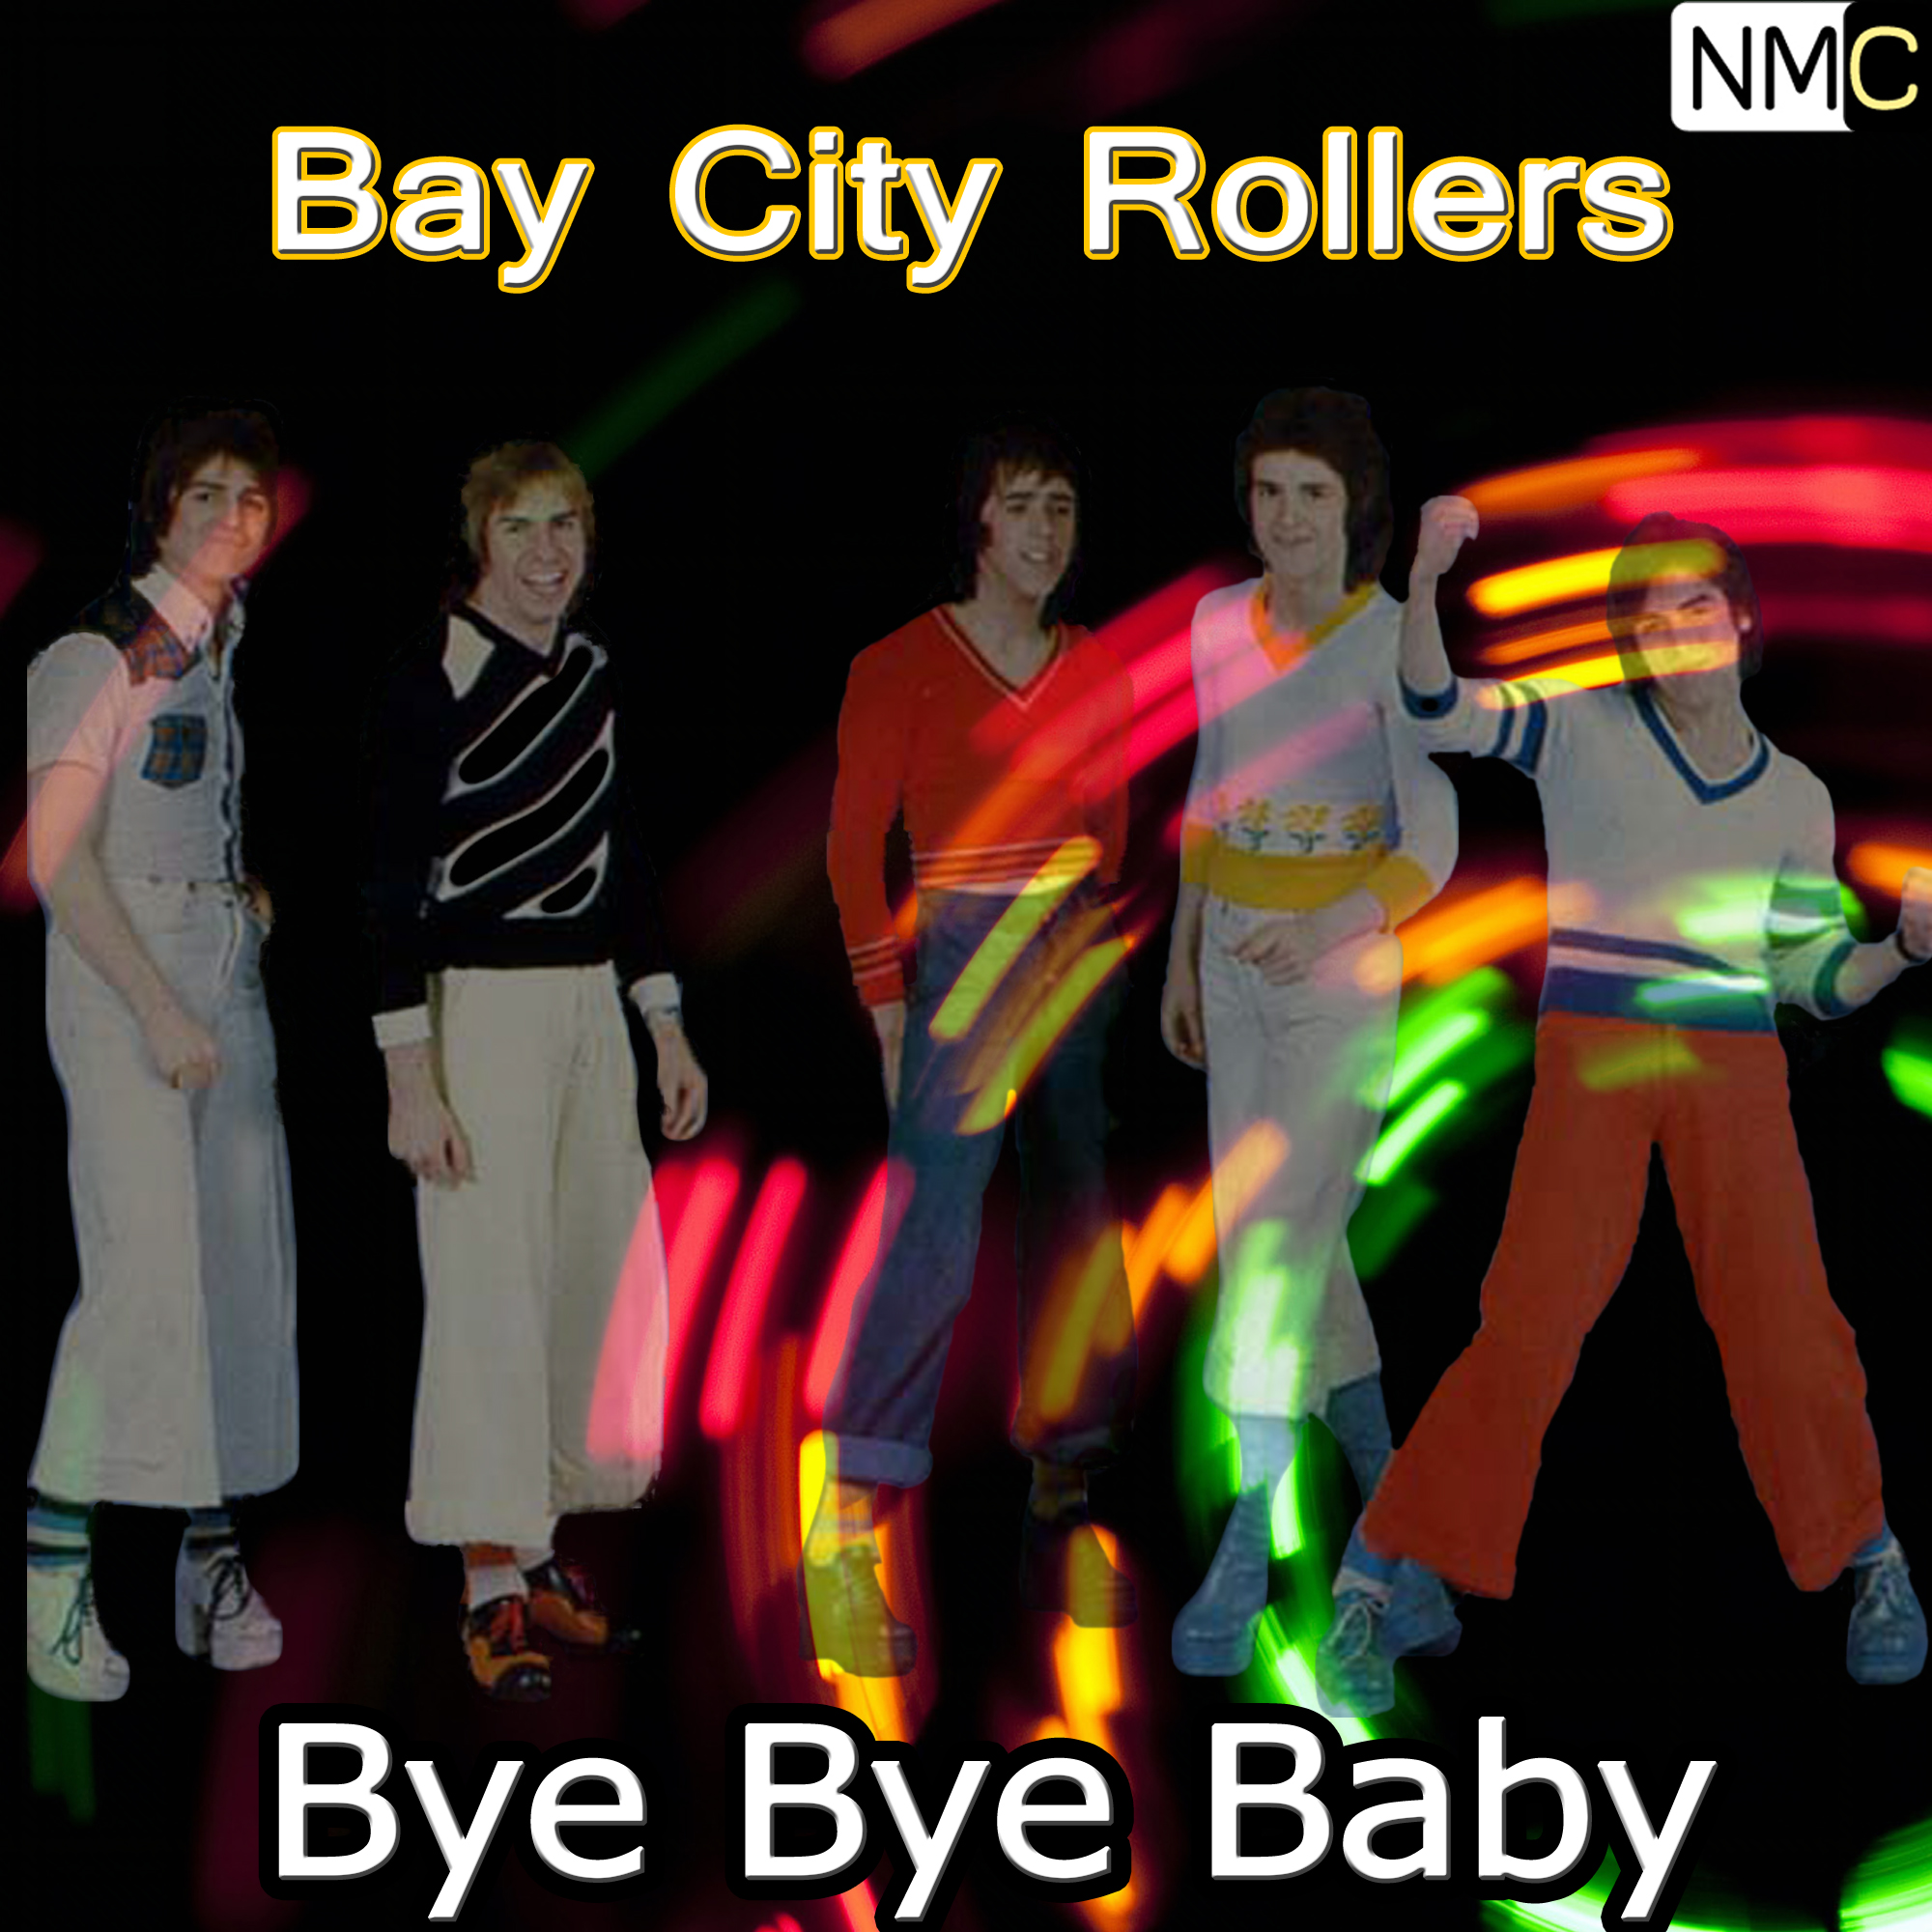 Bay City Rollers - Bye Bye Baby - Nostalgia Music Catalogue